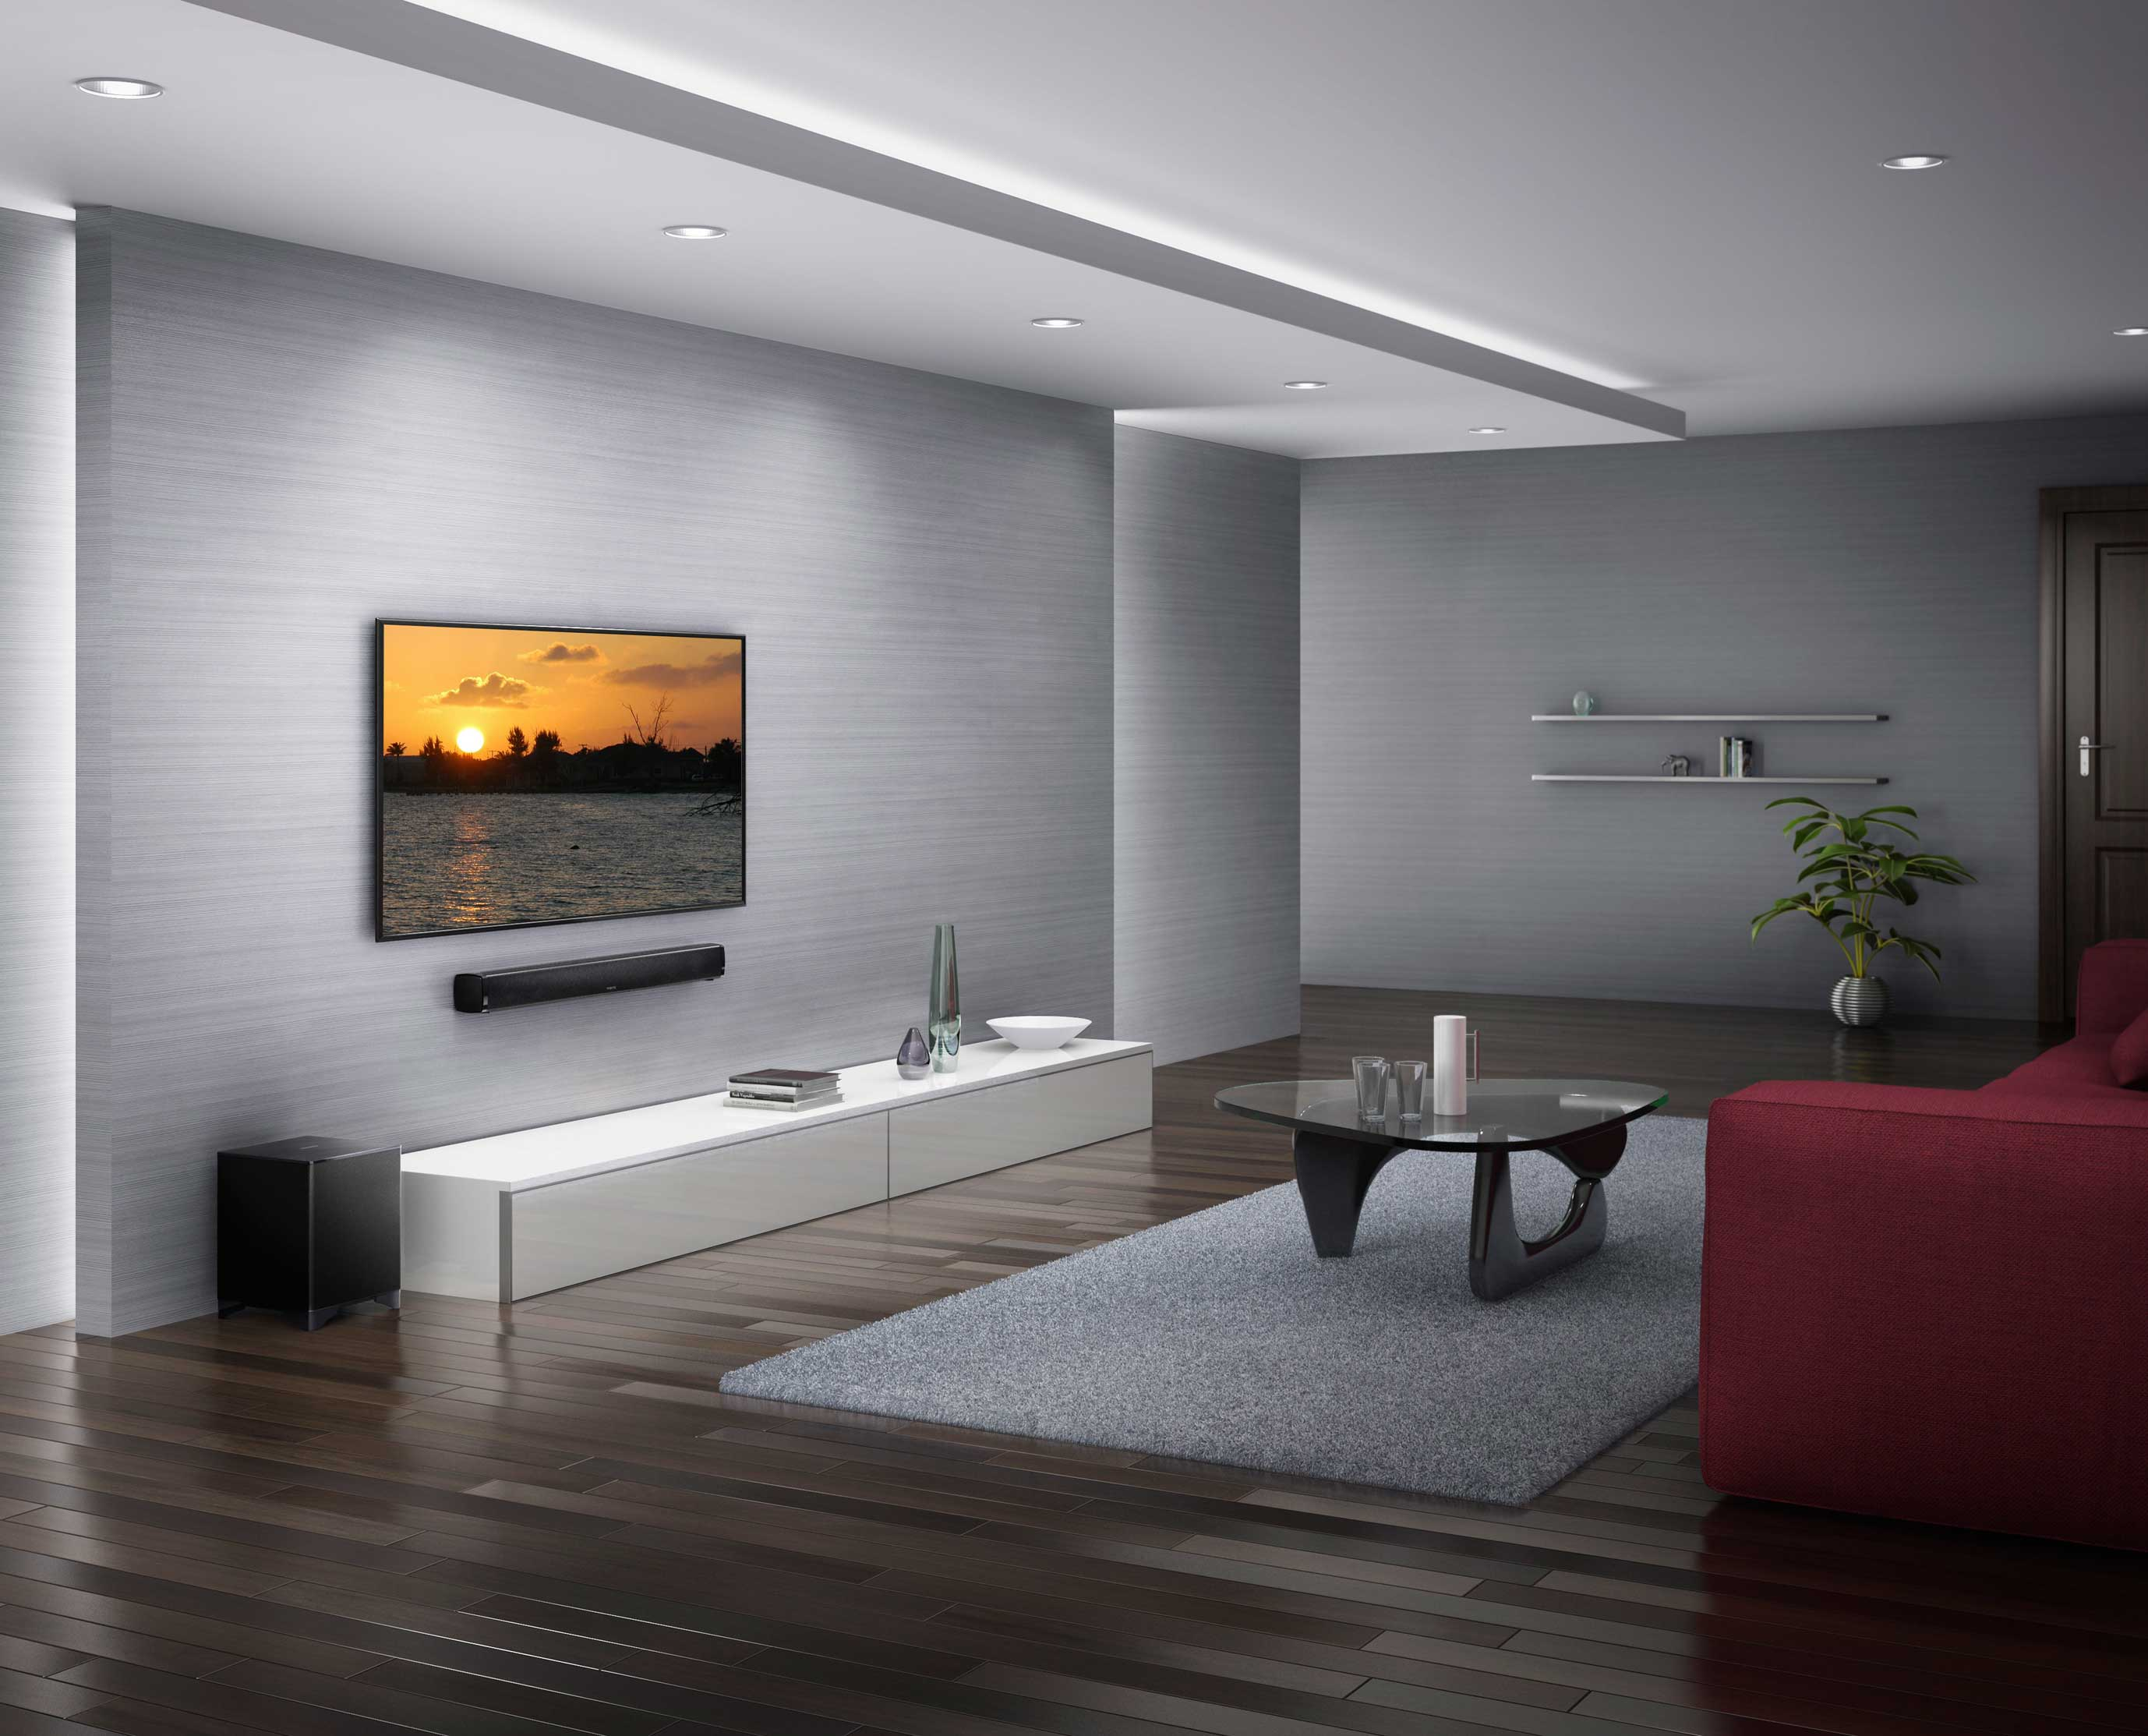 Onkyo aims to improve poor tv sound with soundbar for Samsung wand